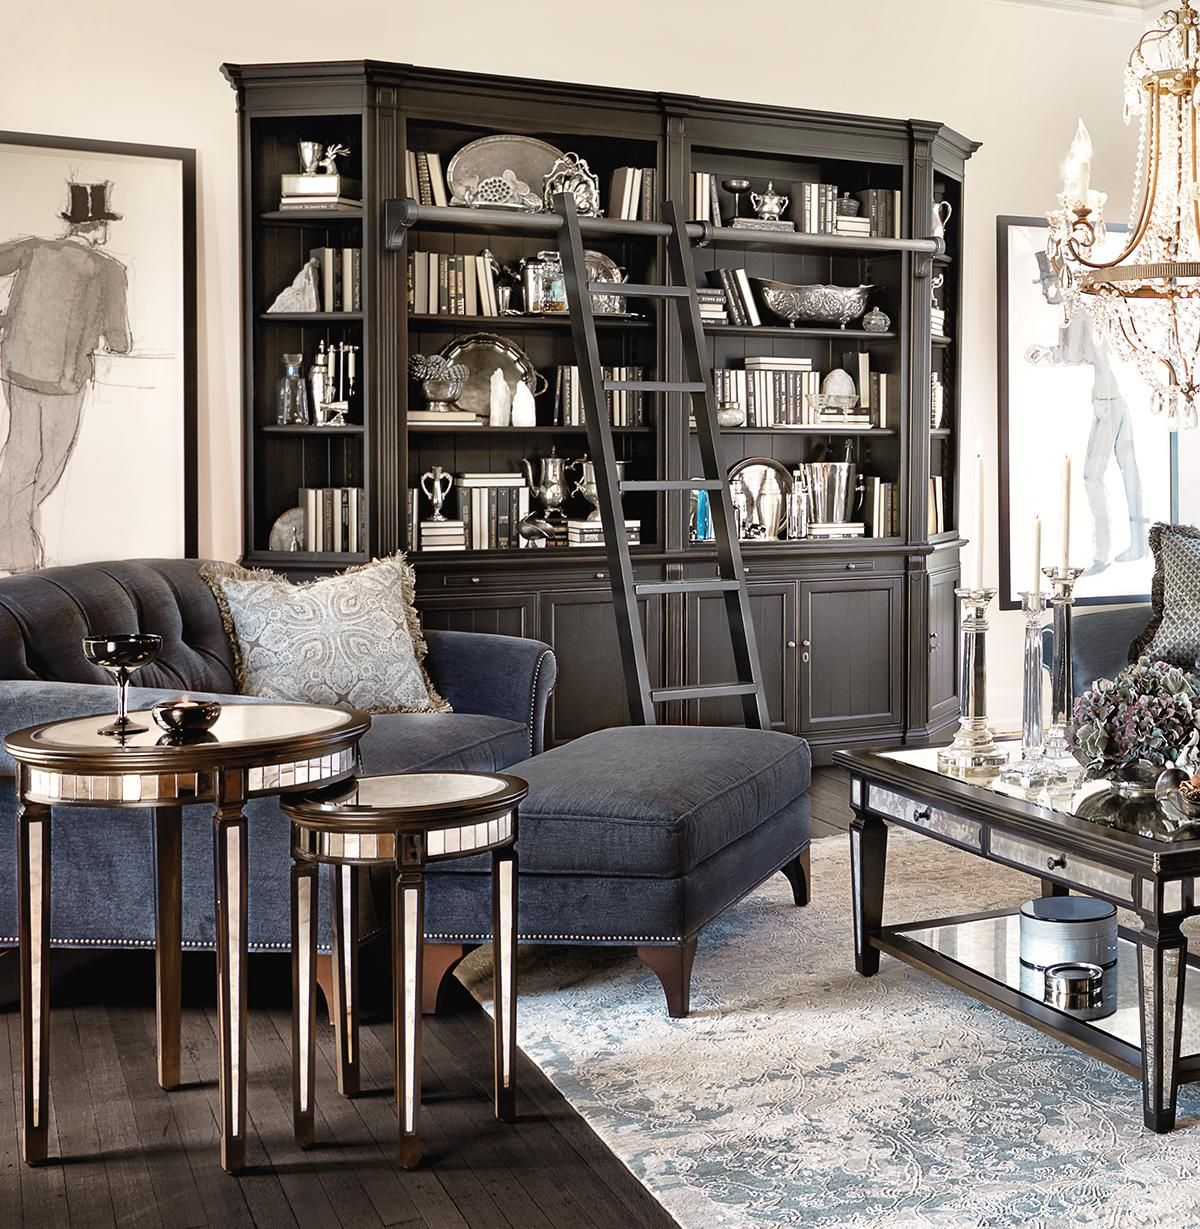 Arhaus Preston Sofa Convertible En Cama Ikea The Athens Library With Two Angled Bookcases On End